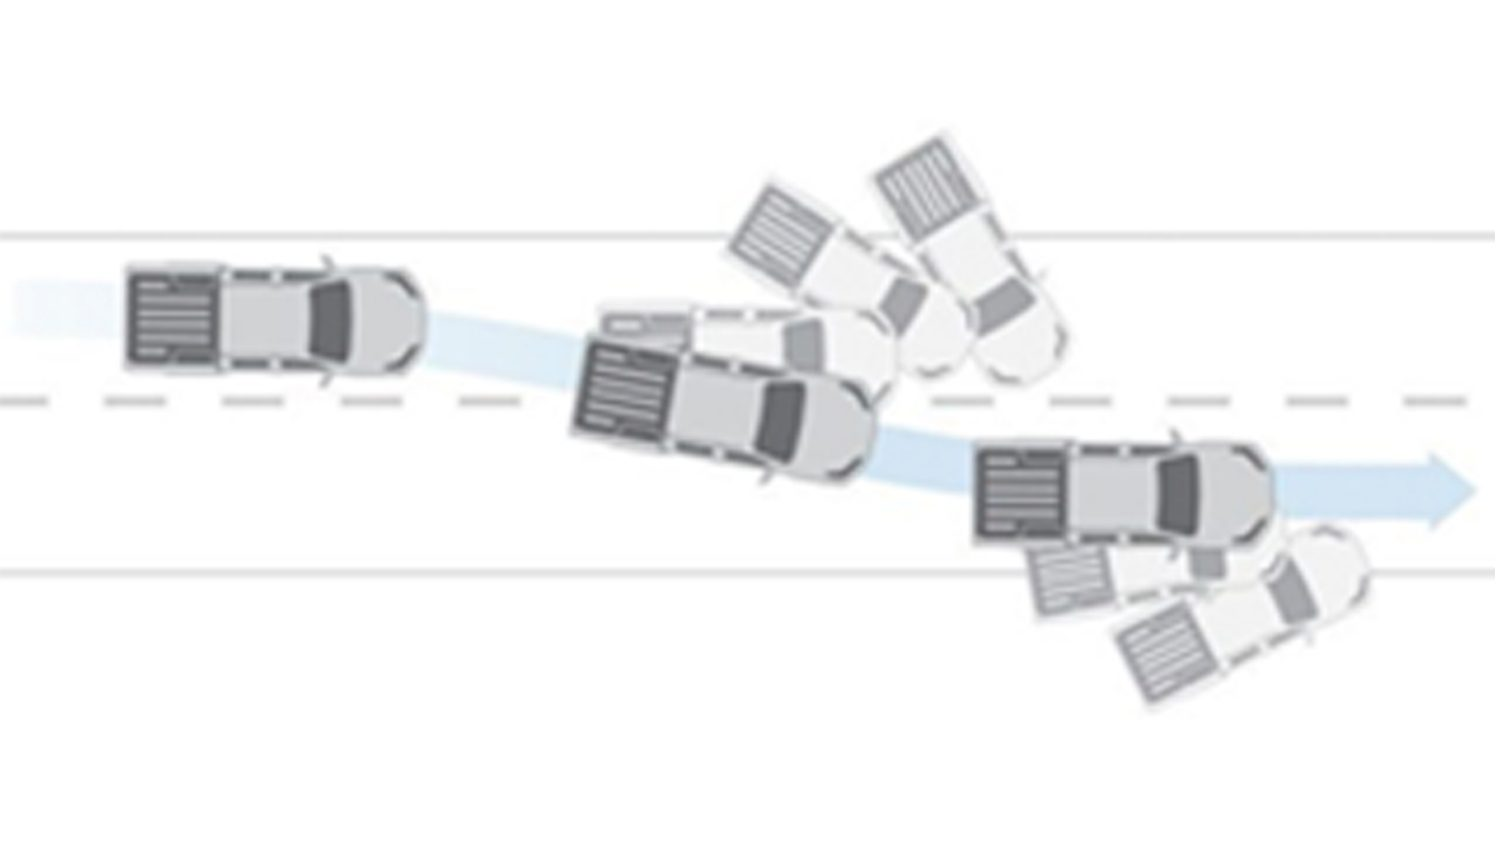 Nissan Navara illustration of the vehicle dynamic control